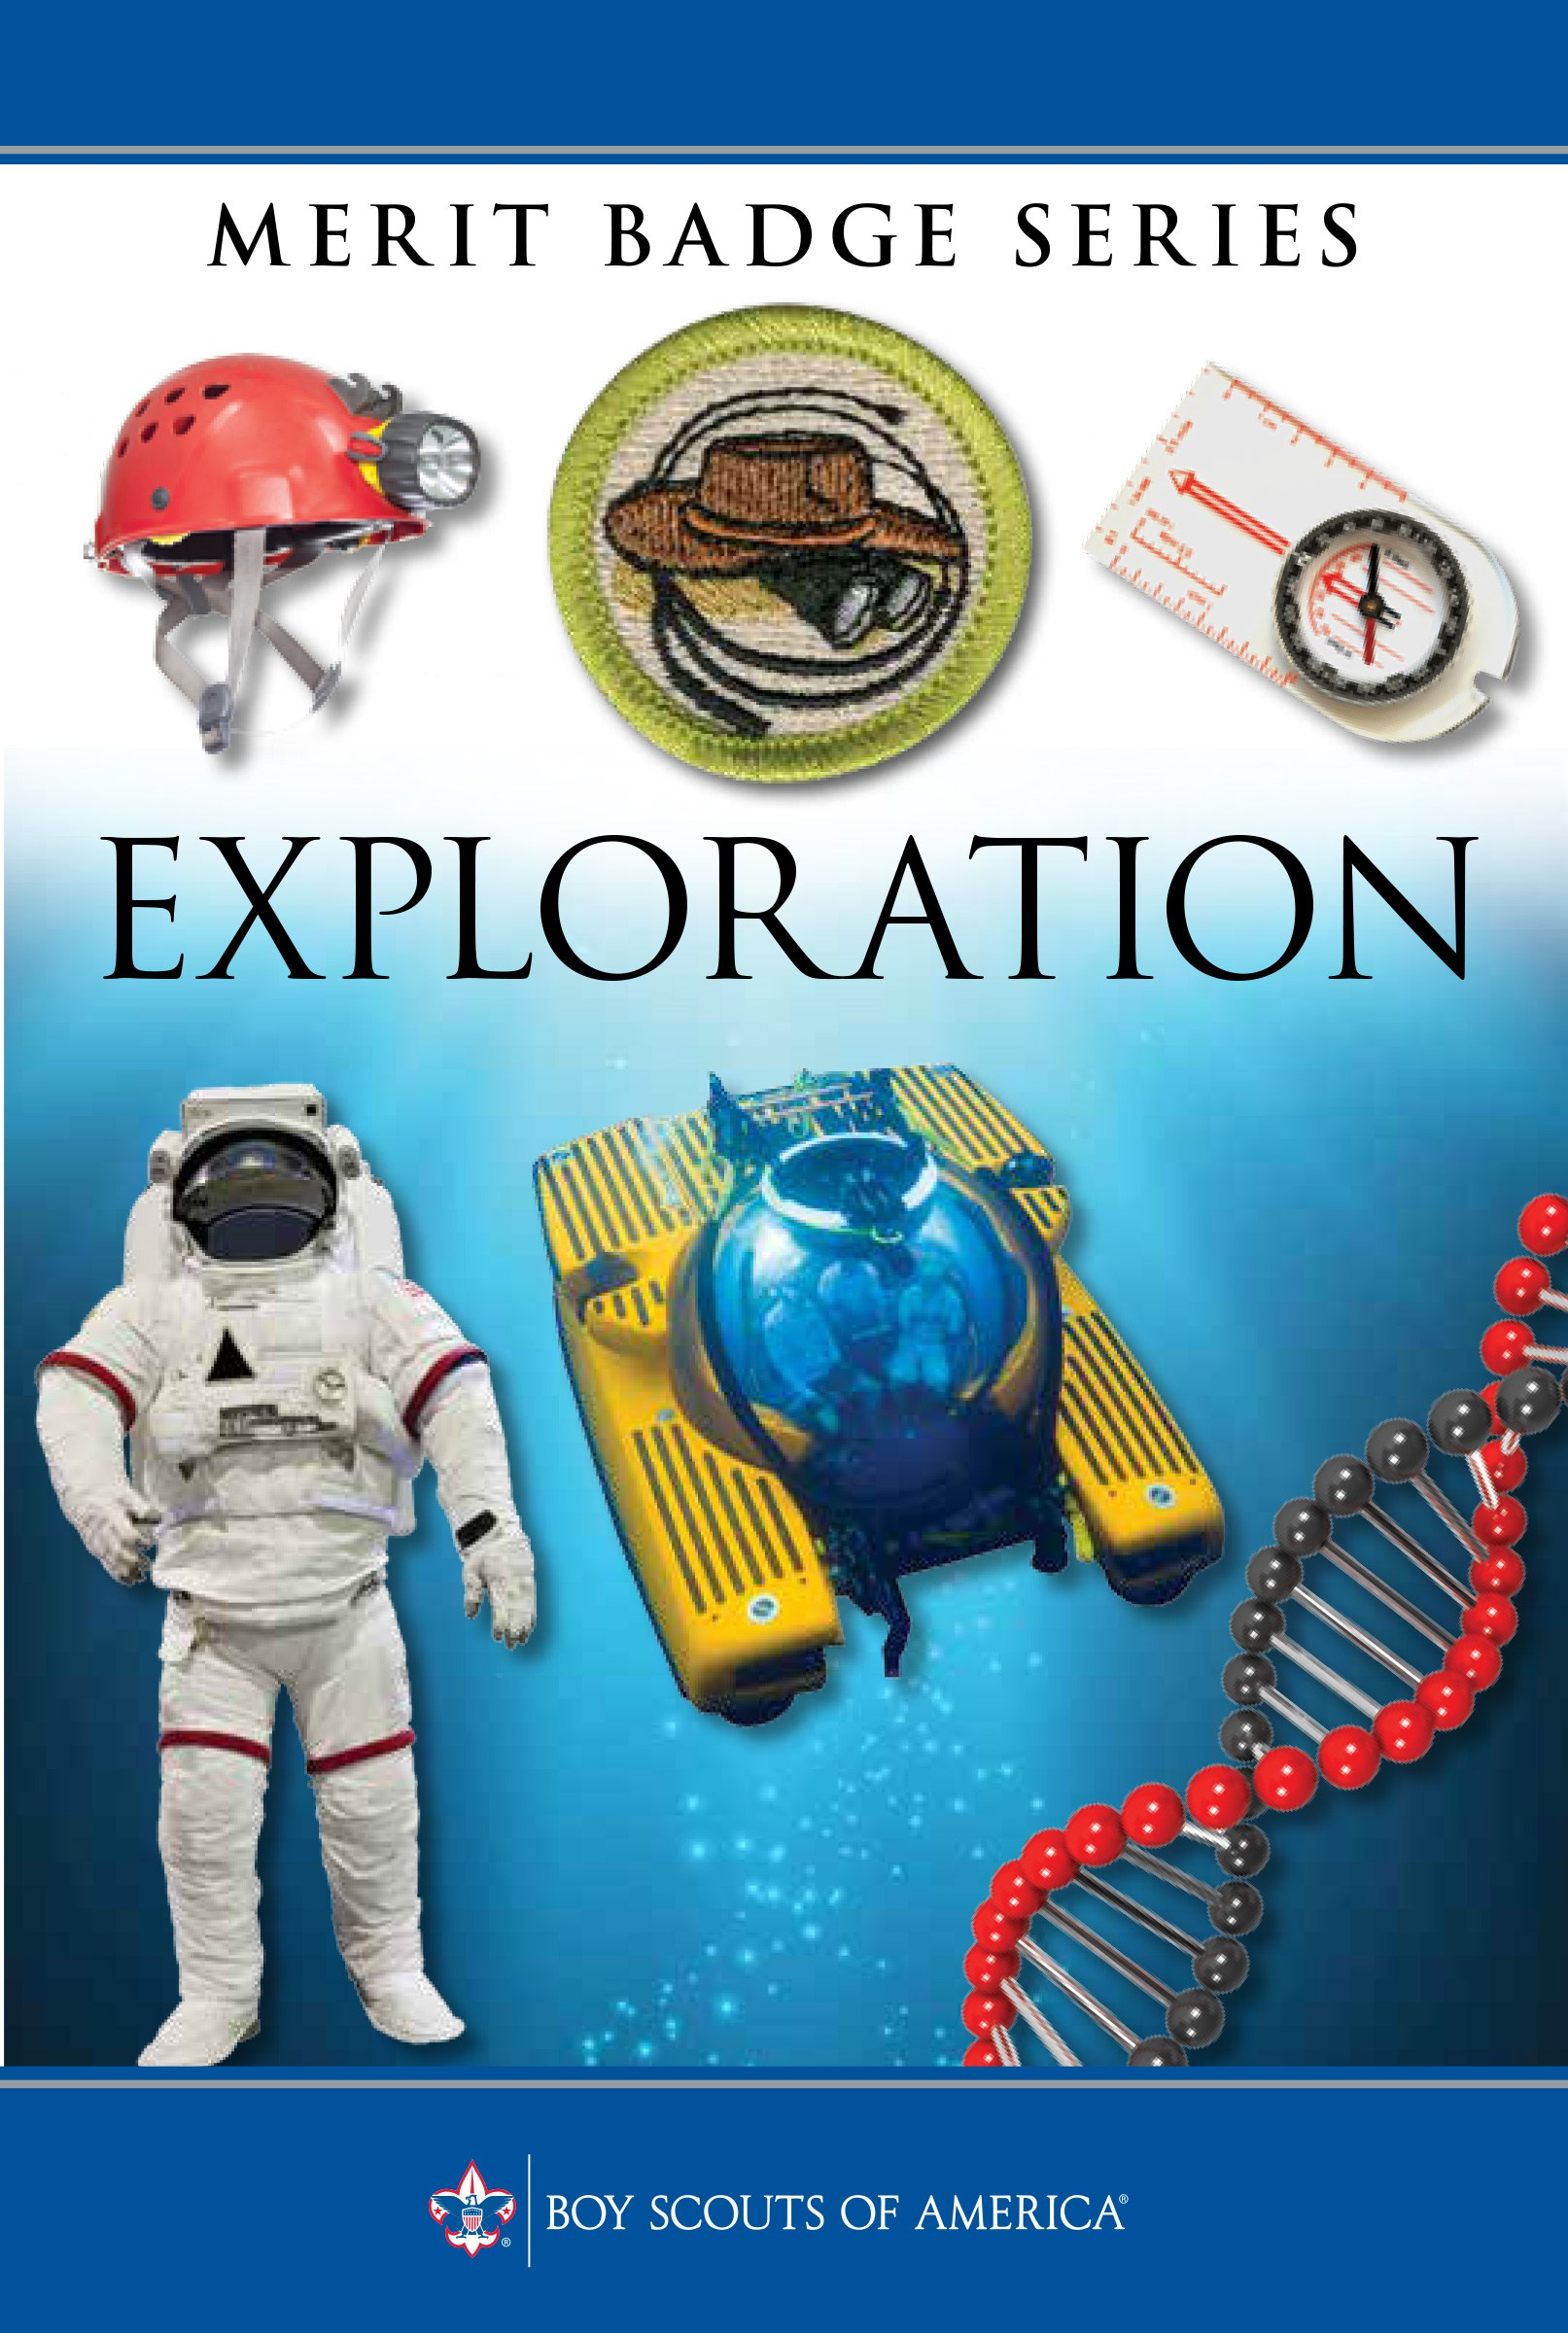 in addition  together with Space Exploration Merit Badge Slide Show furthermore Information about Astronomy Merit Badge Worksheet   r18worker info likewise oceanography worksheets furthermore medicine merit badge worksheet – osklivkaka apromena info furthermore First Aid Merit Badge Worksheet – ishtarairlines moreover  as well Cooking Merit Badge Workbook Boy Scout Cooking Merit Badge Worksheet likewise Boy Scout Merit Badge Worksheets   Homedressage moreover Game Design Merit Badge likewise Space Exploration Merit Badge Worksheet moreover space exploration merit badge – RosalieGoes likewise Space Exploration Merit Badge Worksheet   Oaklandeffect also  moreover Personal Fitness Merit Badge Requirements Pdf   Kayafitness co. on space exploration merit badge worksheet